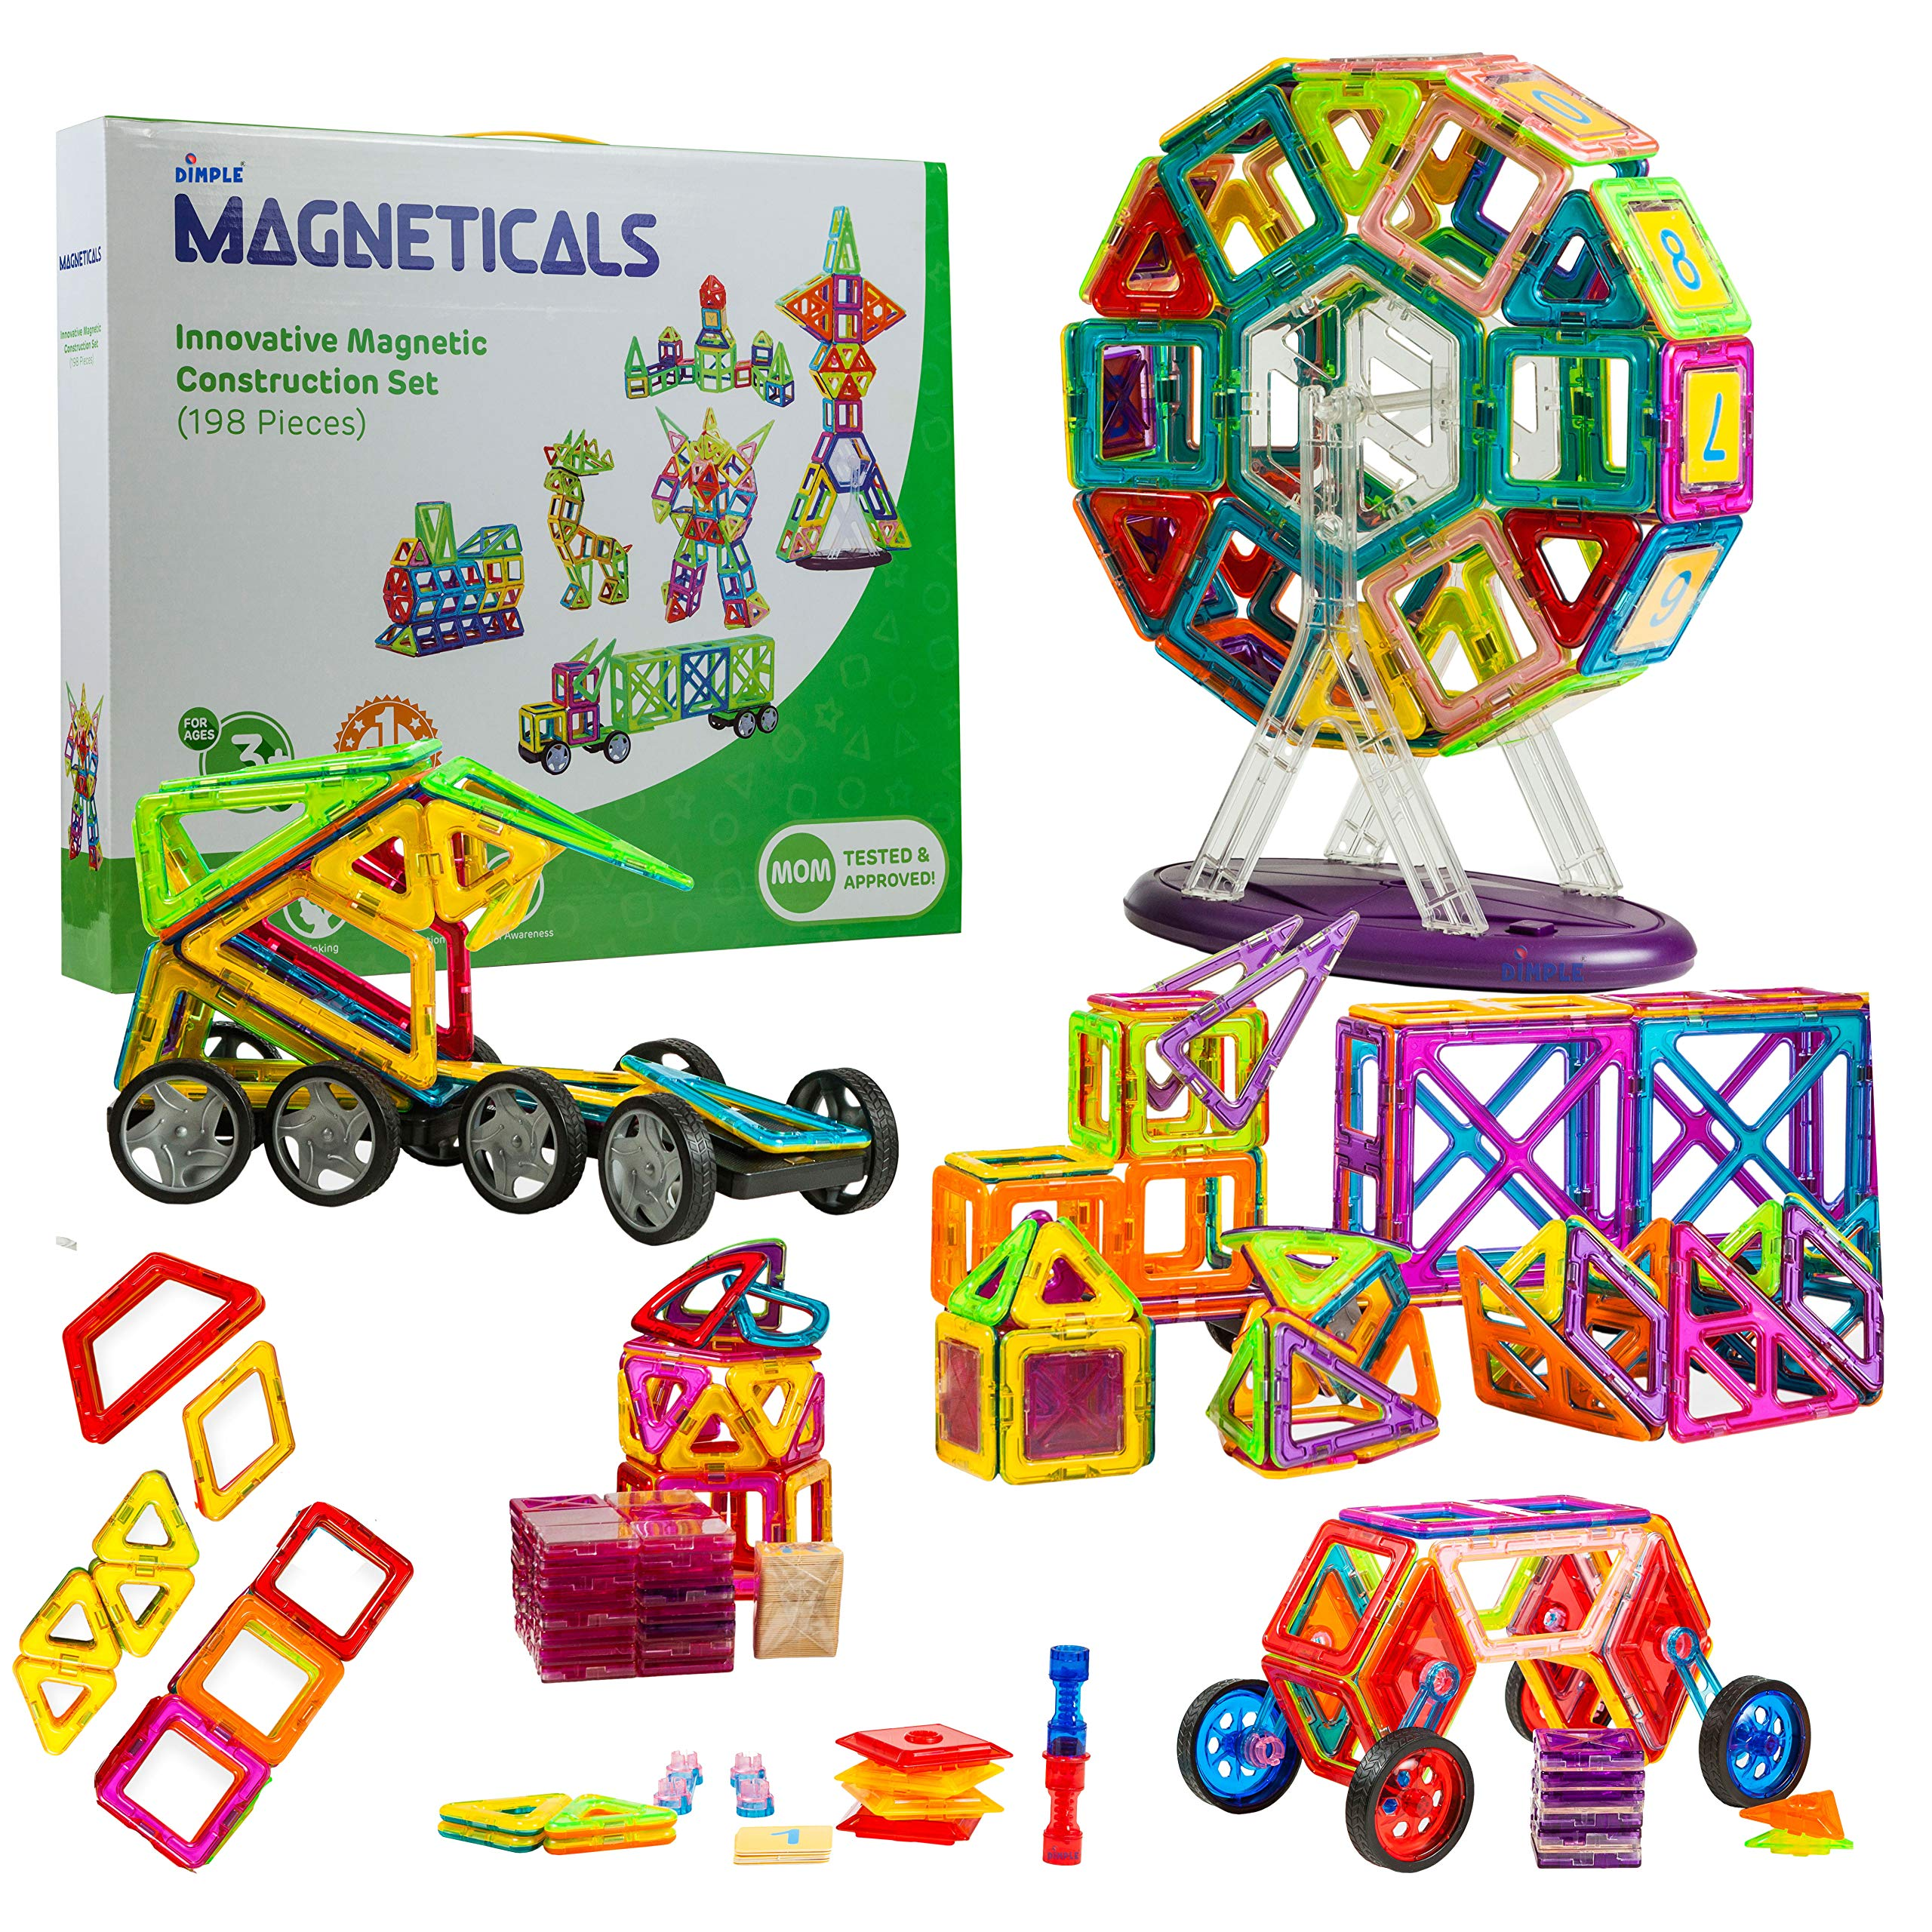 Vaiyer Magneticals 198 Pieces Creative Magnetic Building Blocks Set, 3D Building Construction Tile Set, STEM Educational Toy, Improve Hand-Eye Coordination, Toy for Girls and Boys for All Ages